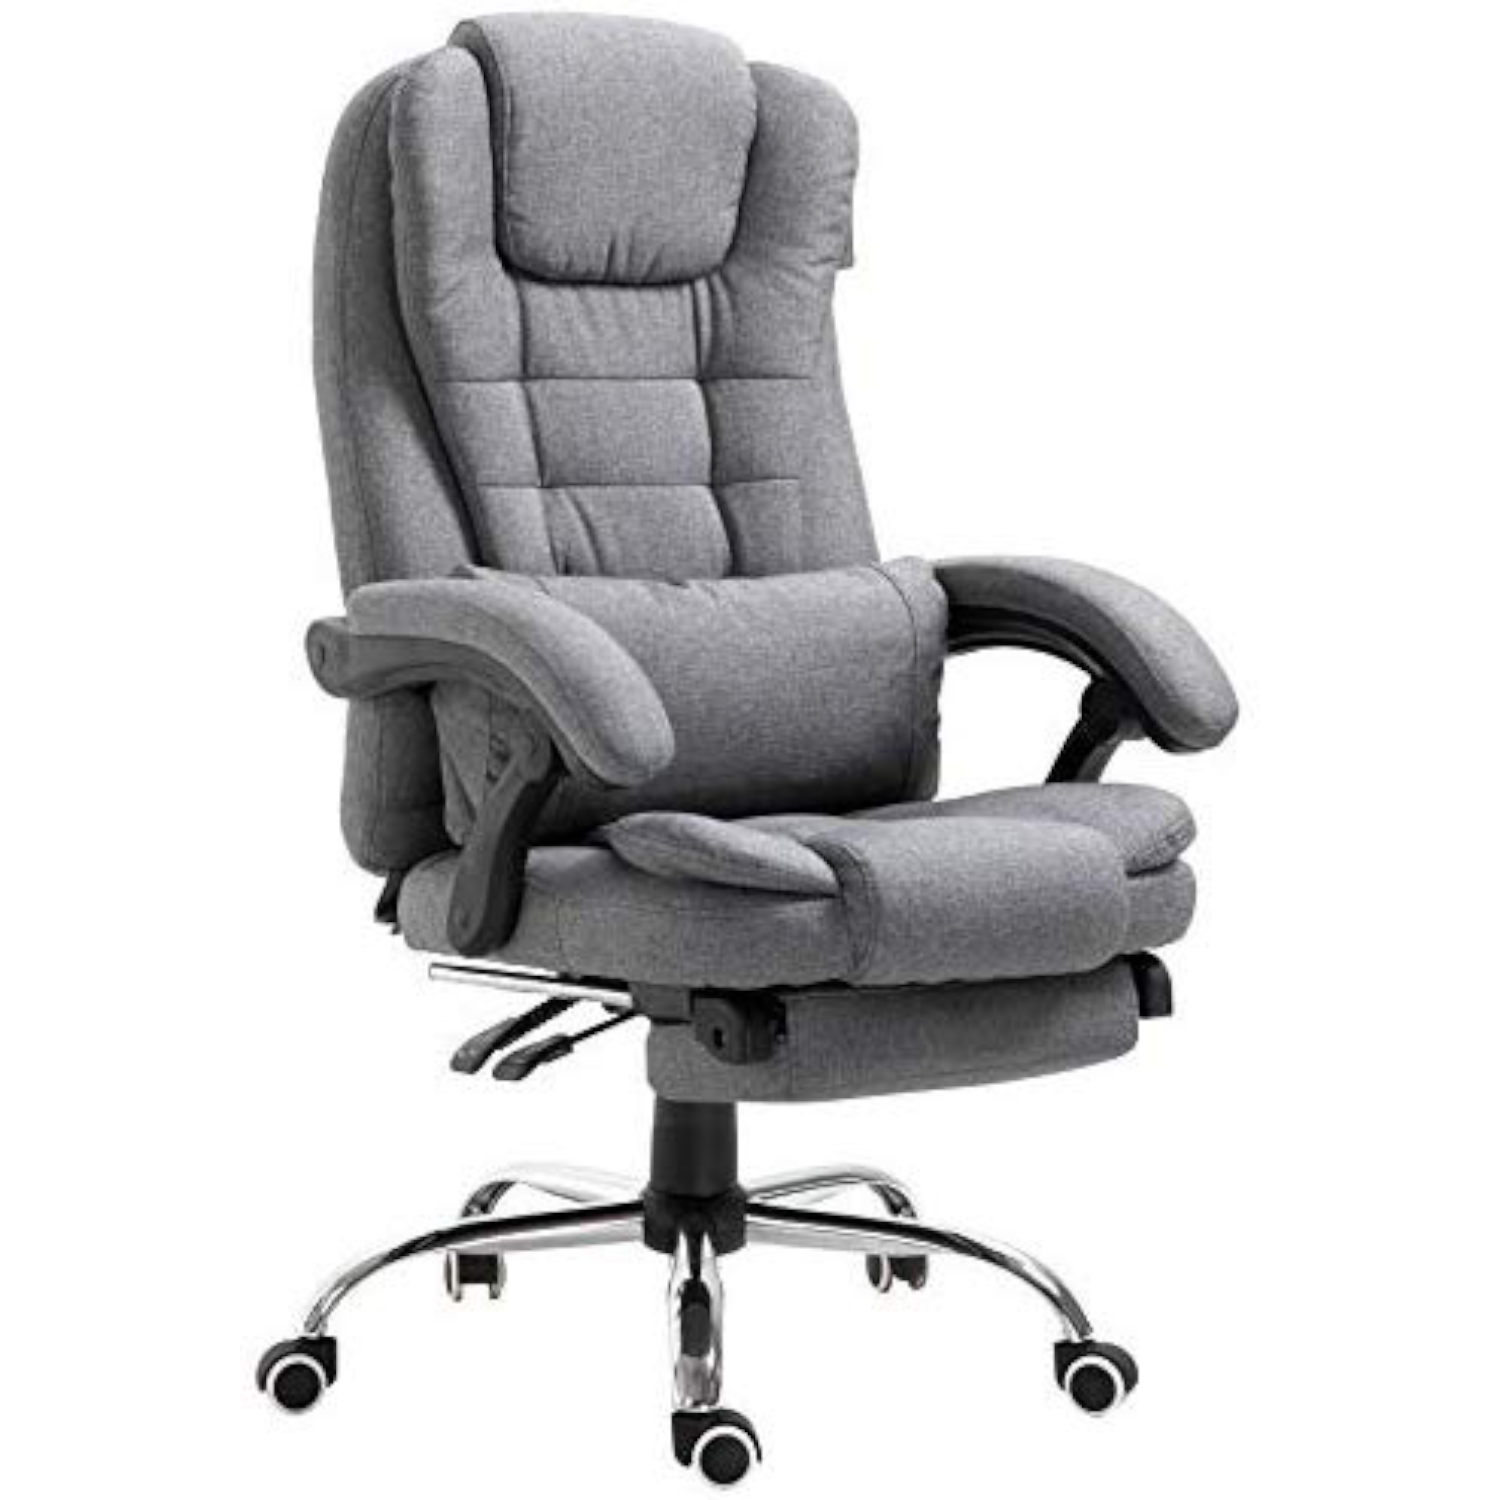 Executive Reclining Computer Desk Chair With Footrest Headrest And Lumbar Cushion Support Furniture Mr34 Grey Fabric